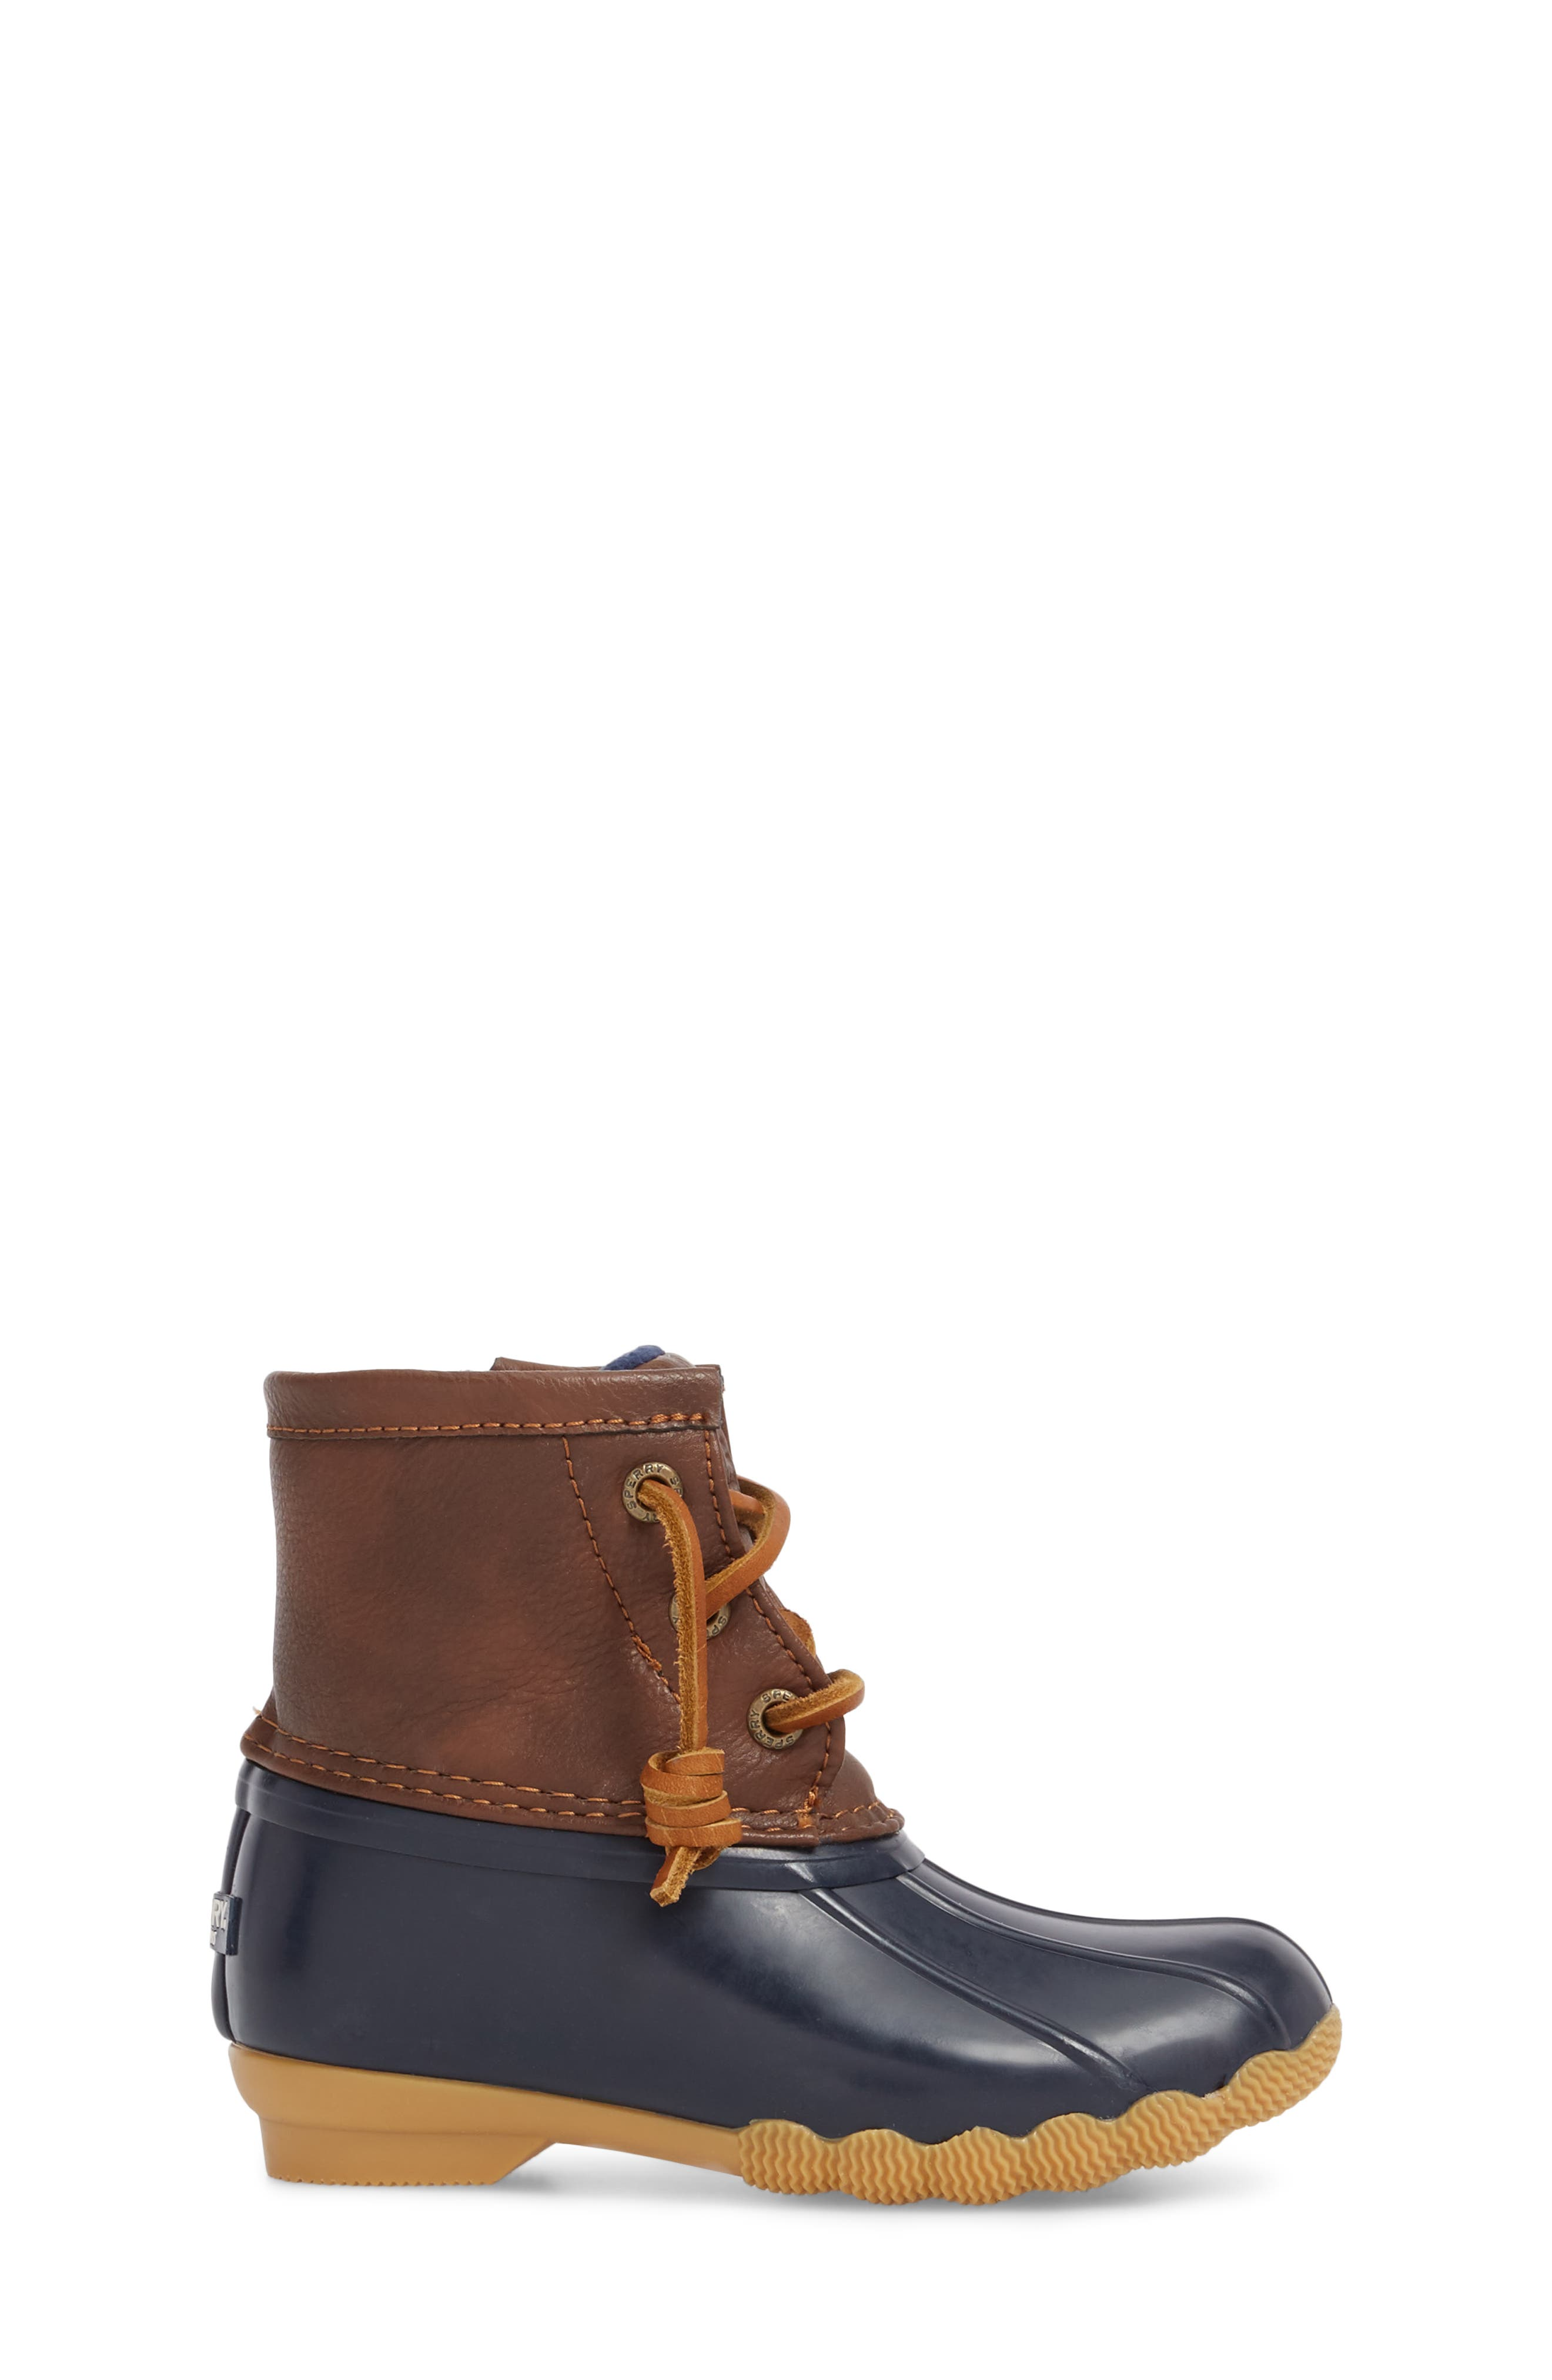 Saltwater Duck Boot,                             Alternate thumbnail 3, color,                             Navy/ Navy